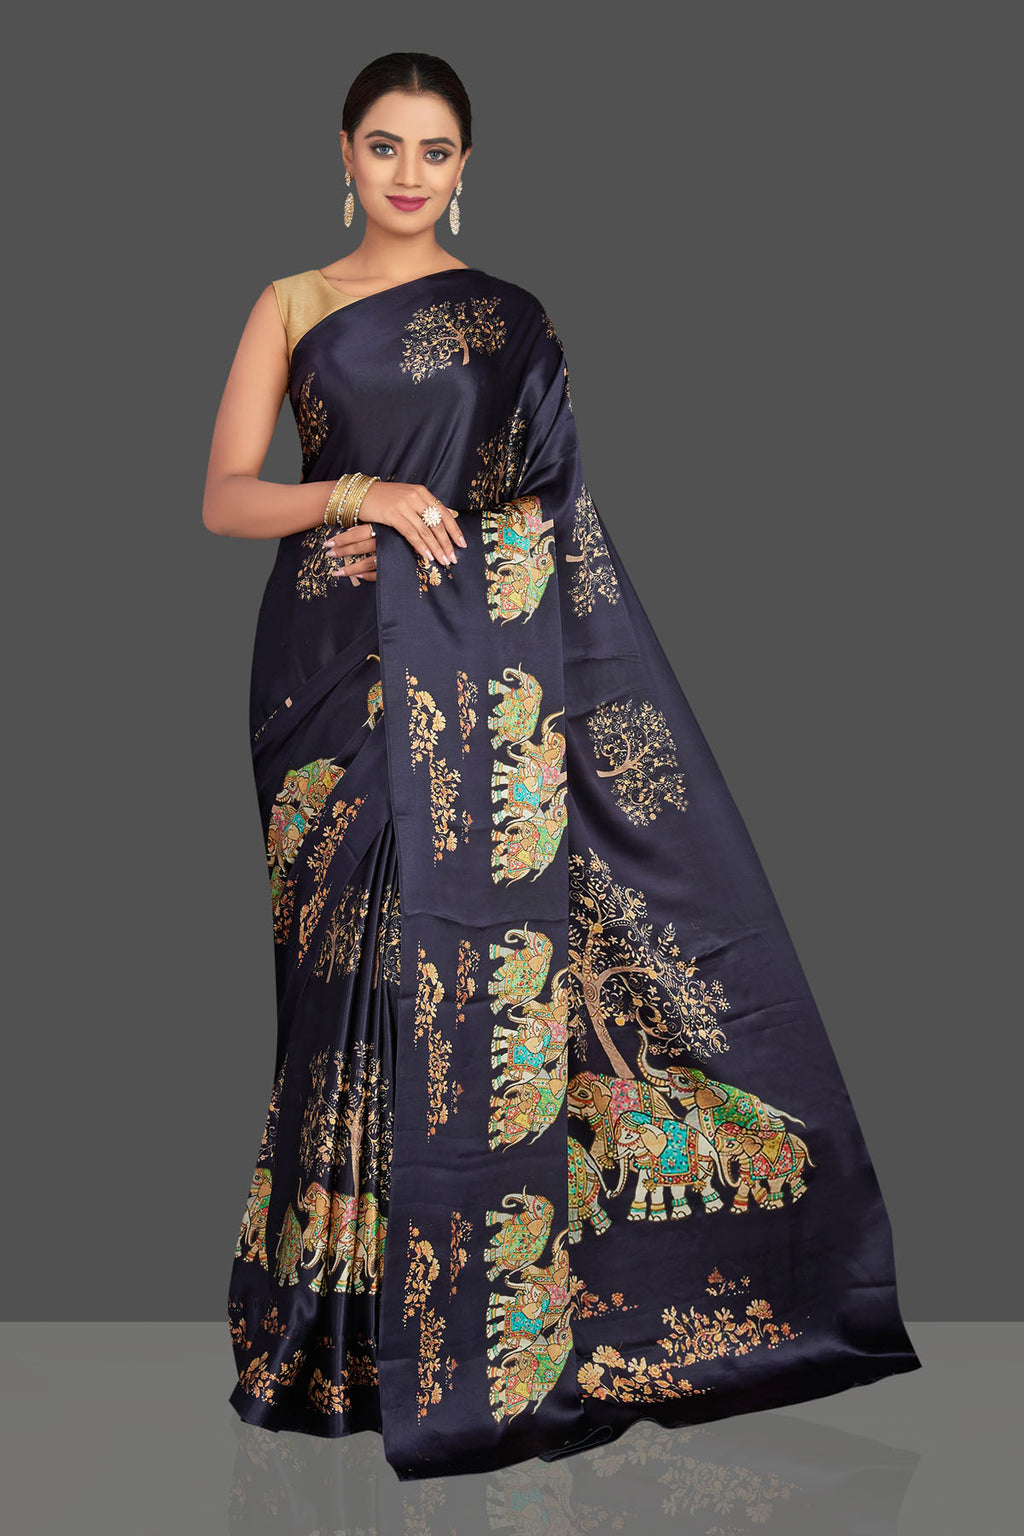 Shop beautiful navy blue printed satin crepe sari online in USA. Shop designer sarees, printed sarees, embroidered saris, crepe sarees in USA from Pure Elegance Indian fashion store in USA.-full view